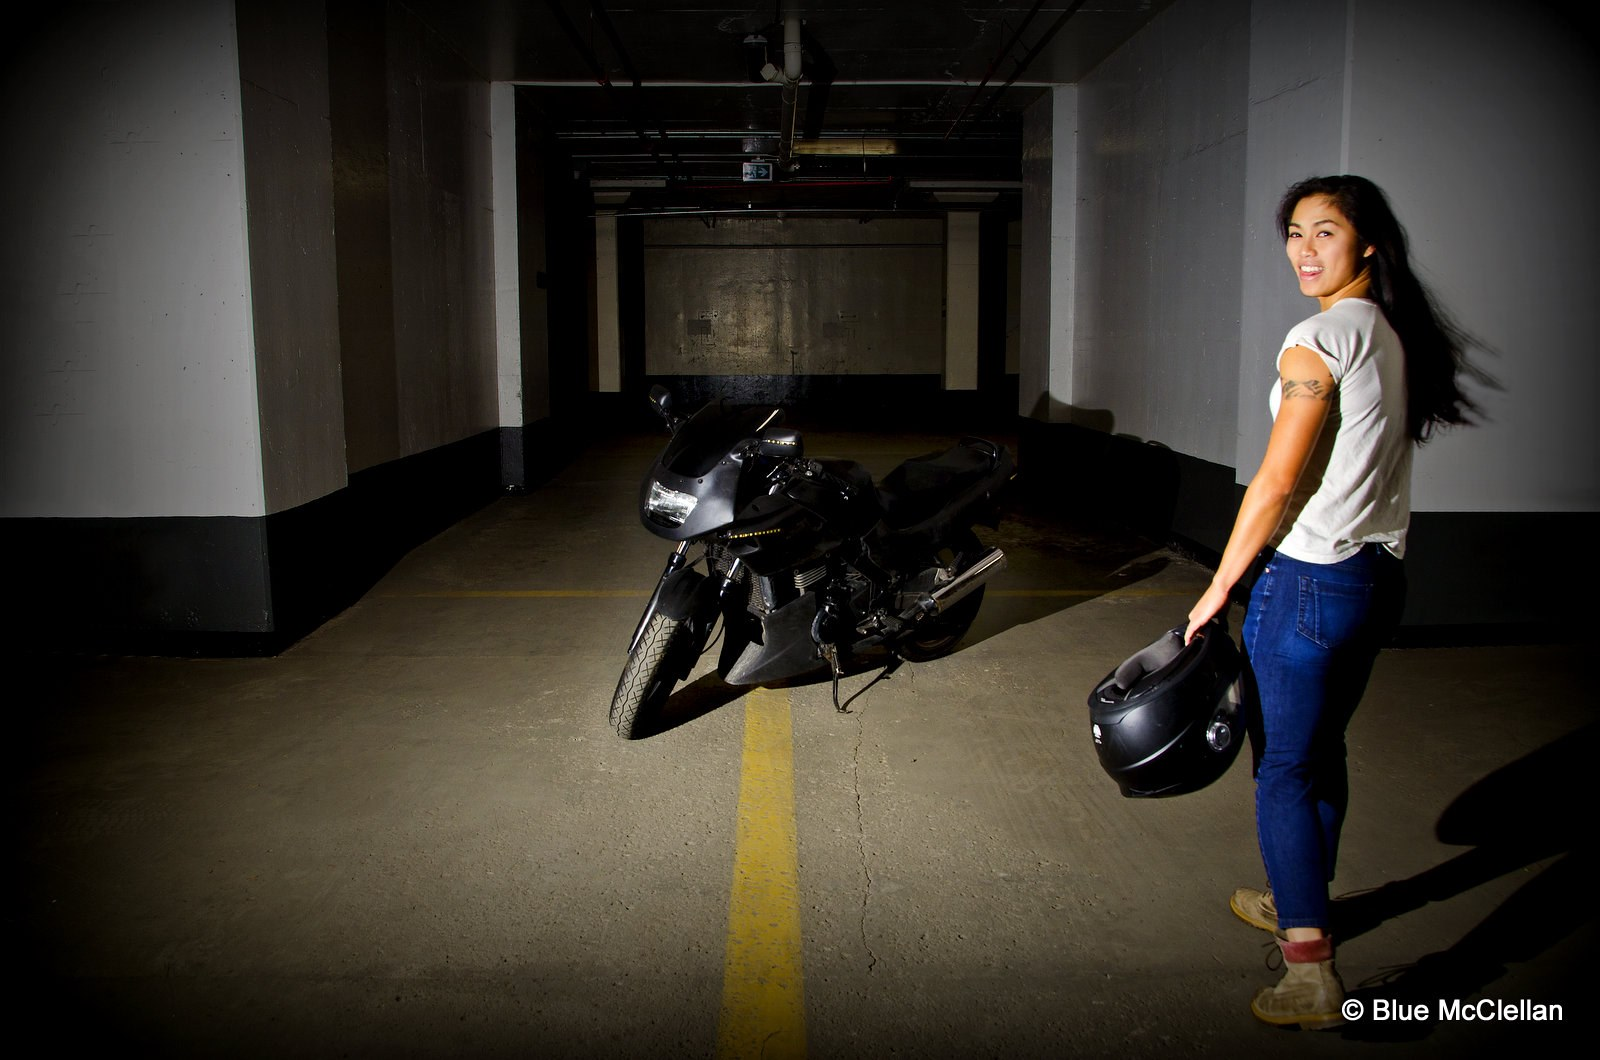 motorcycle and me